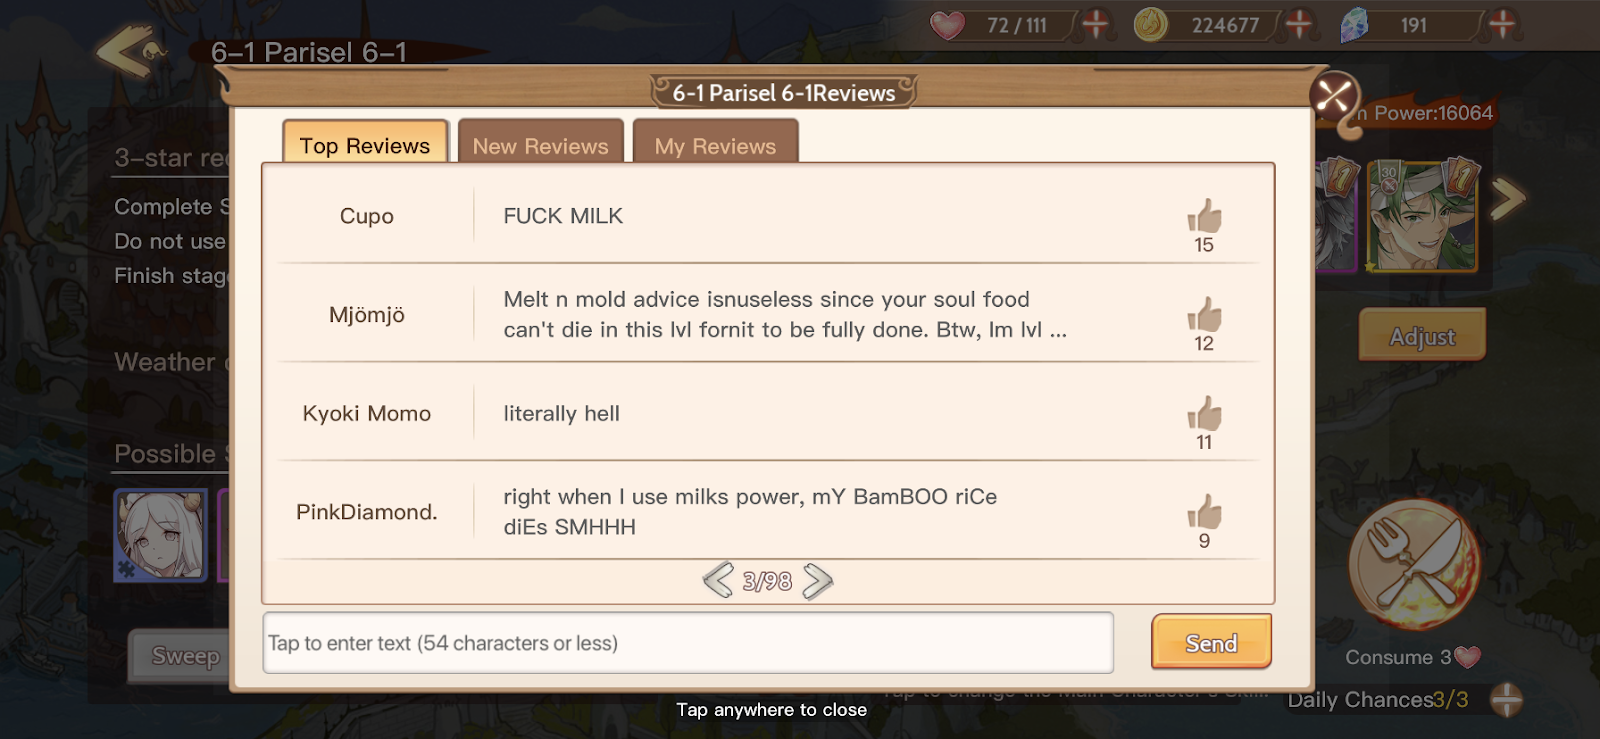 The Best Part Of This Horny Anime Food Game Is Connecting With Other